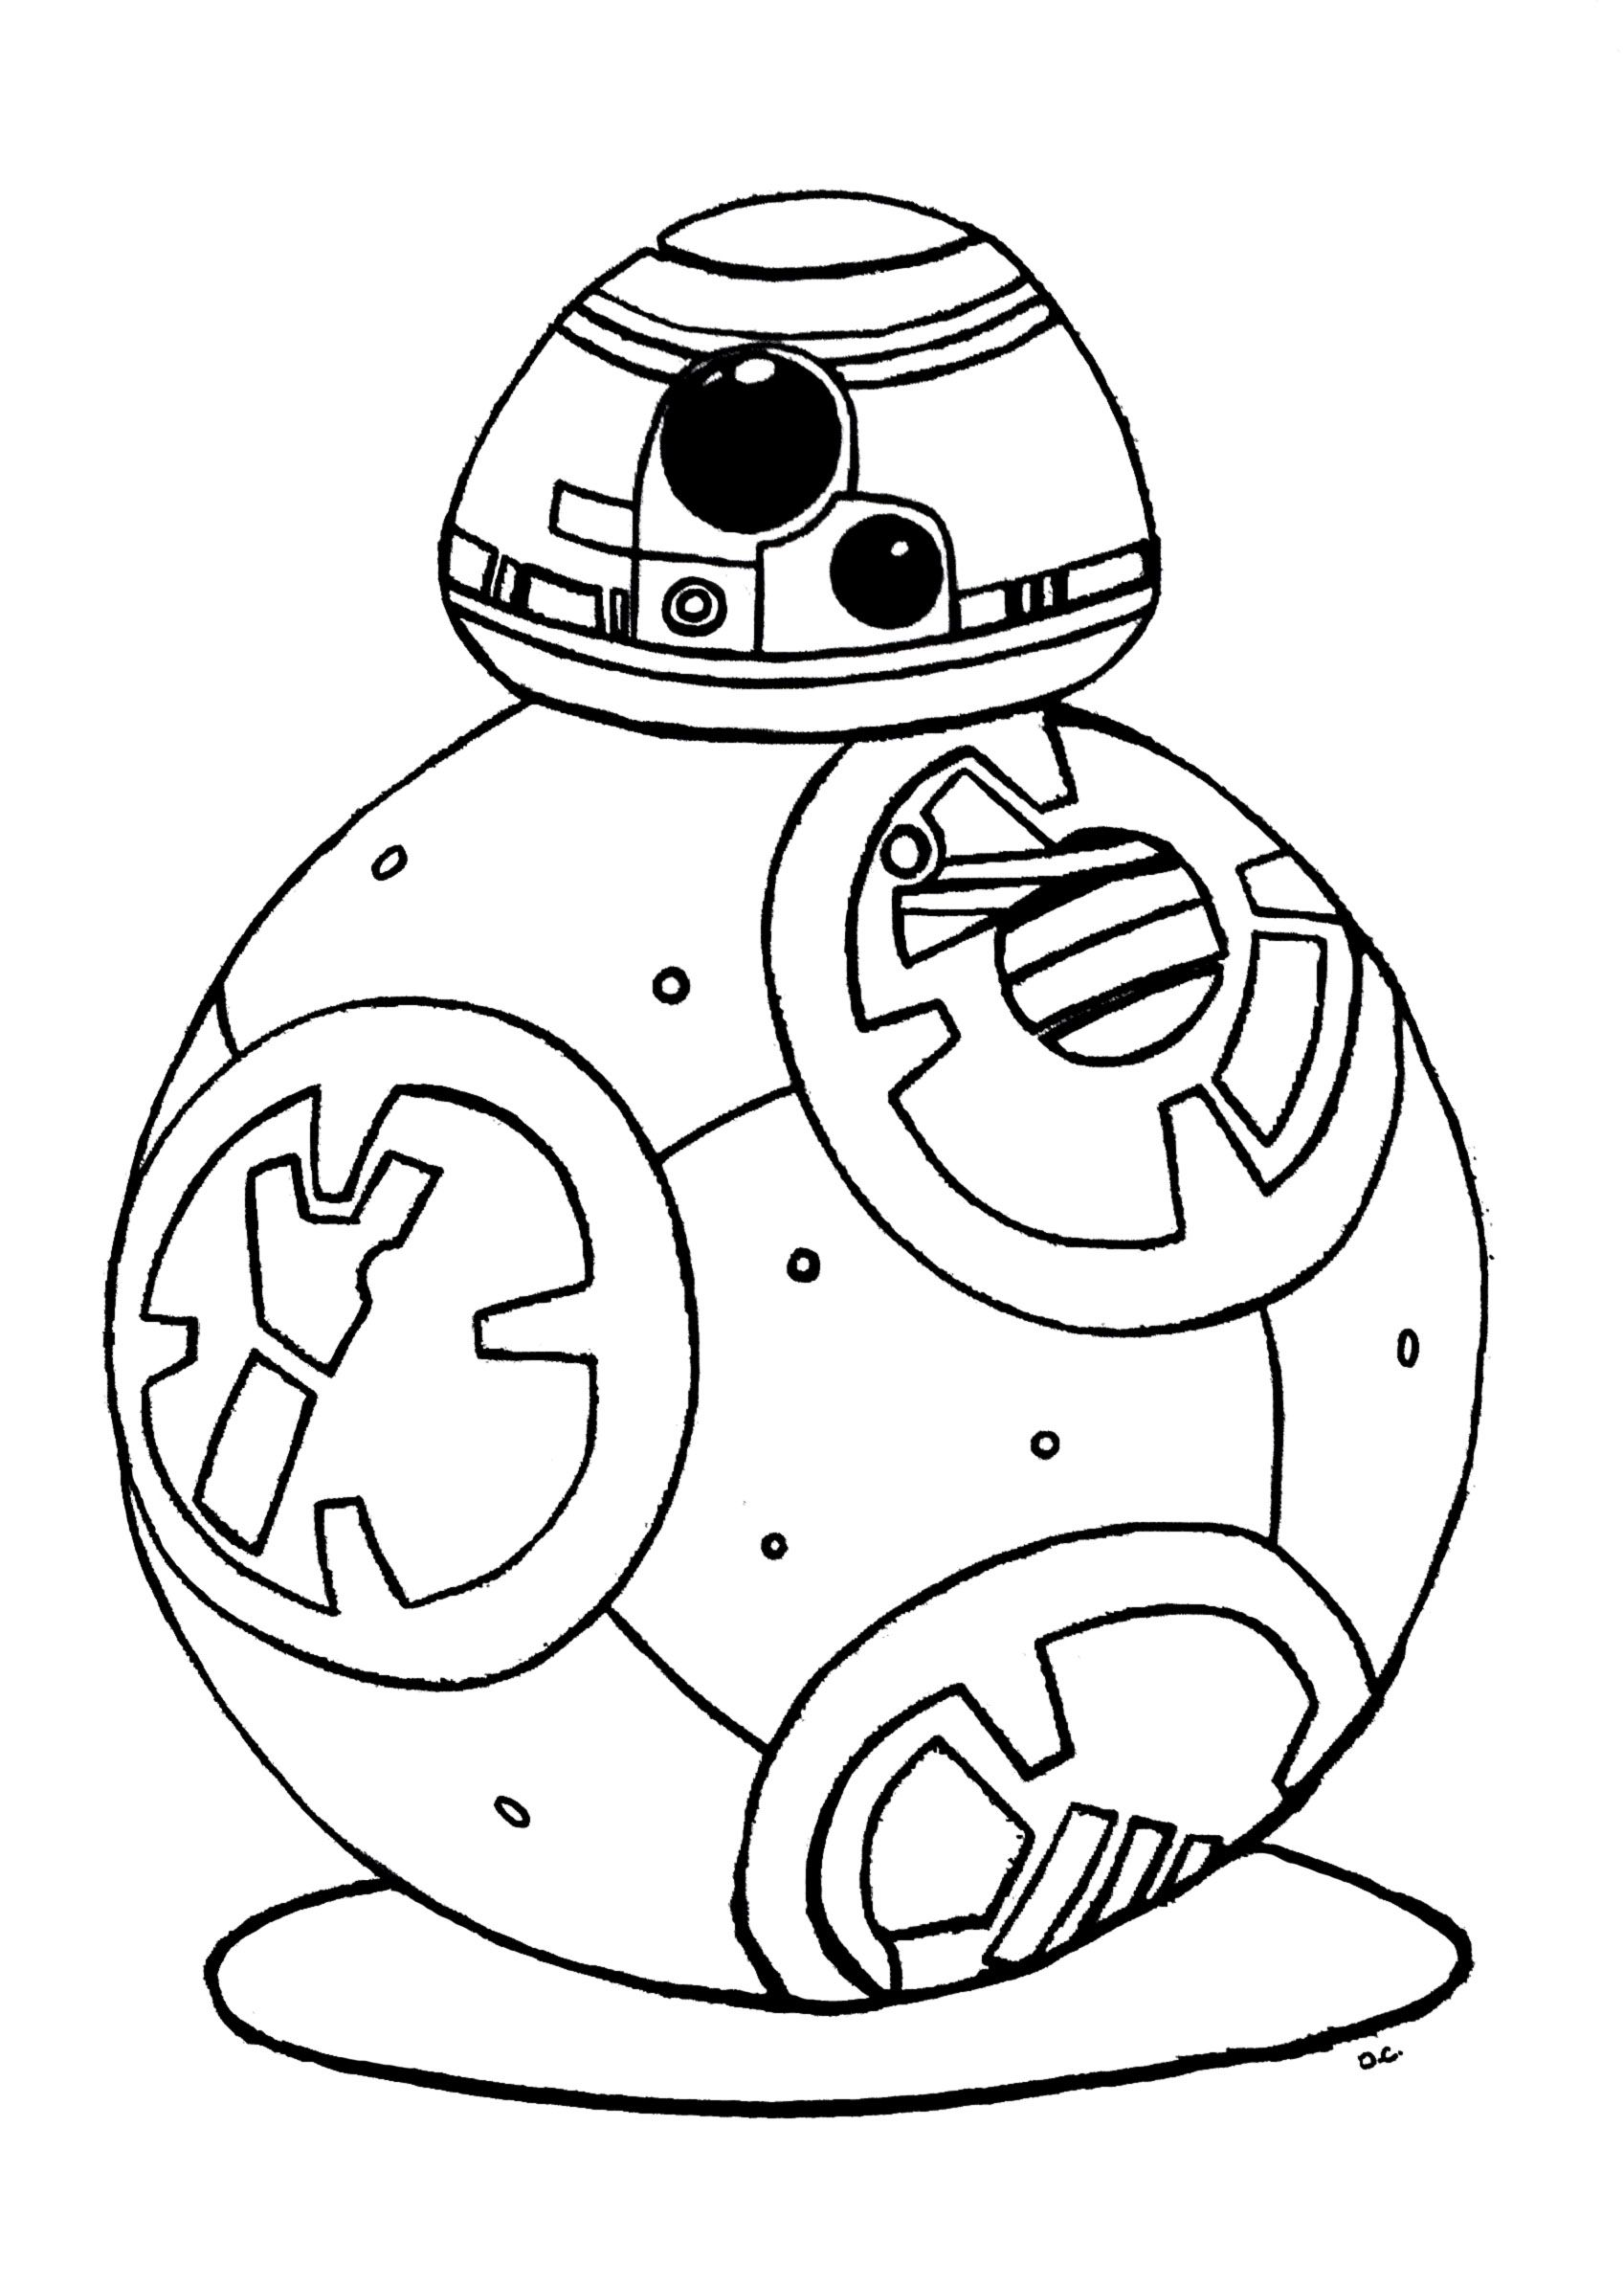 r2d2 coloring pages - coloriage bb 8 star wars 7 reveil de la force robot bb8